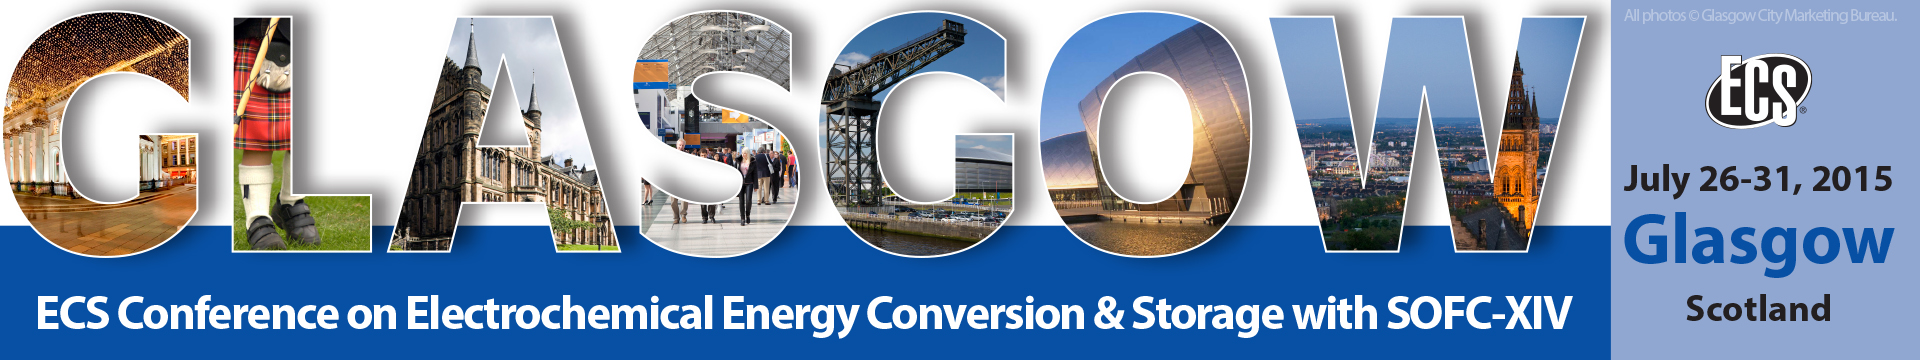 ECS Conference on Electrochemical Energy Conversion & Storage with SOFC-XIV (July 26-31, 2015): http://www.electrochem.org/meetings/satellite/glasgow/